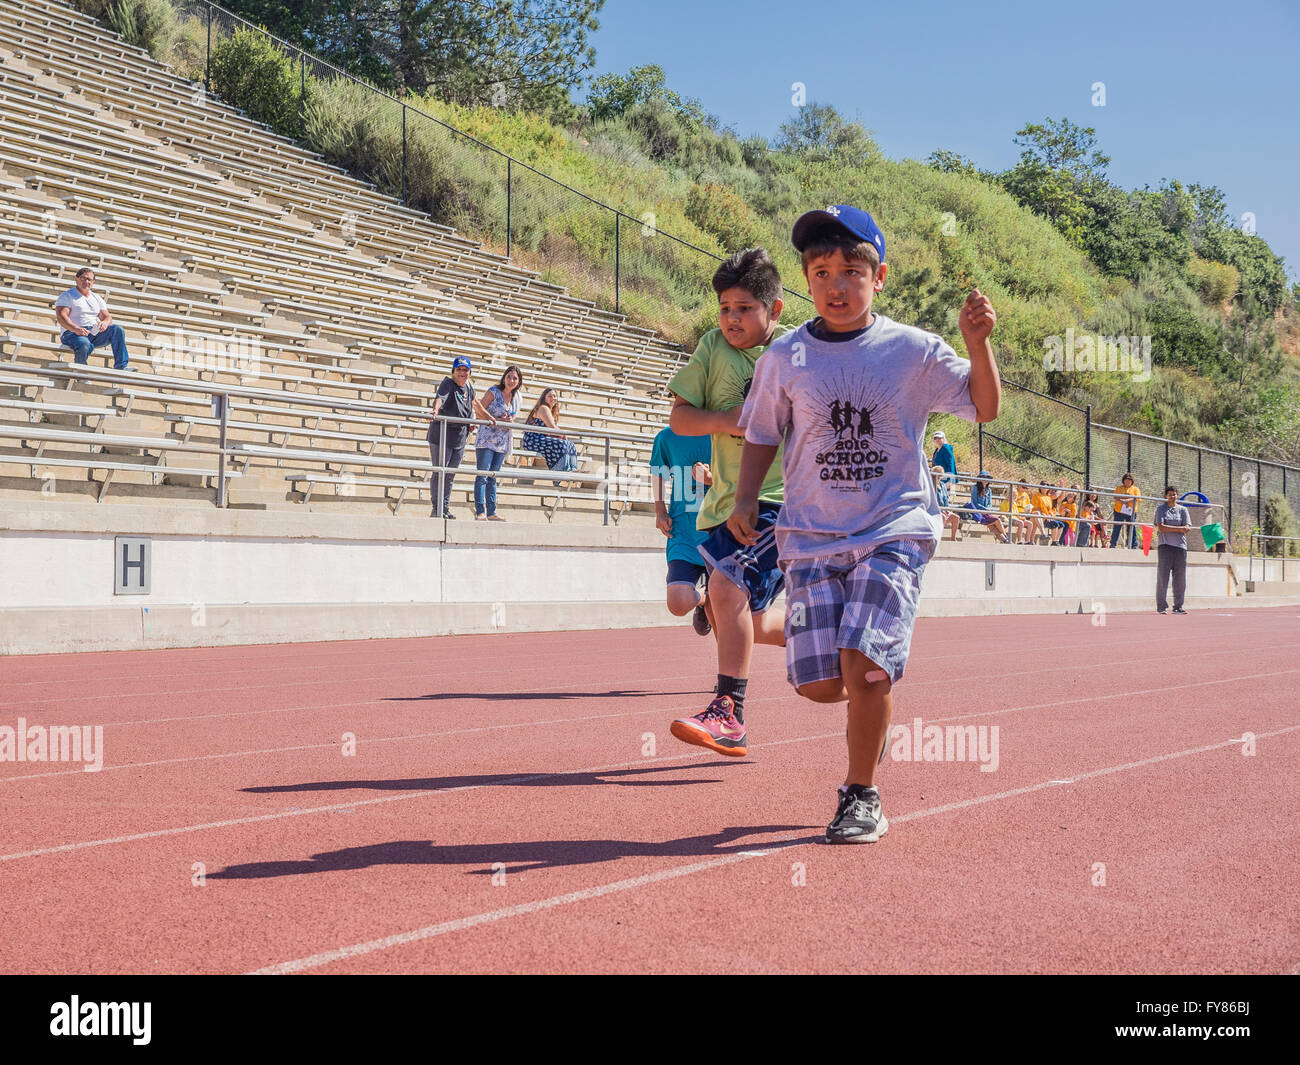 Disabled boys race at the Southern California Special Olympics held at La Playa Stadium at Santa Barbara City College. - Stock Image